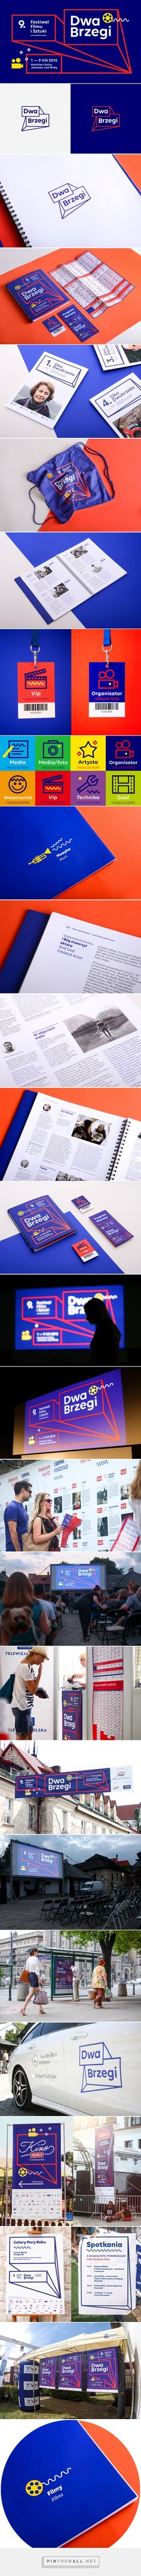 Dwa Brzegi - 9th Film and Art Festival on Behance - created via http://pinthemall.net